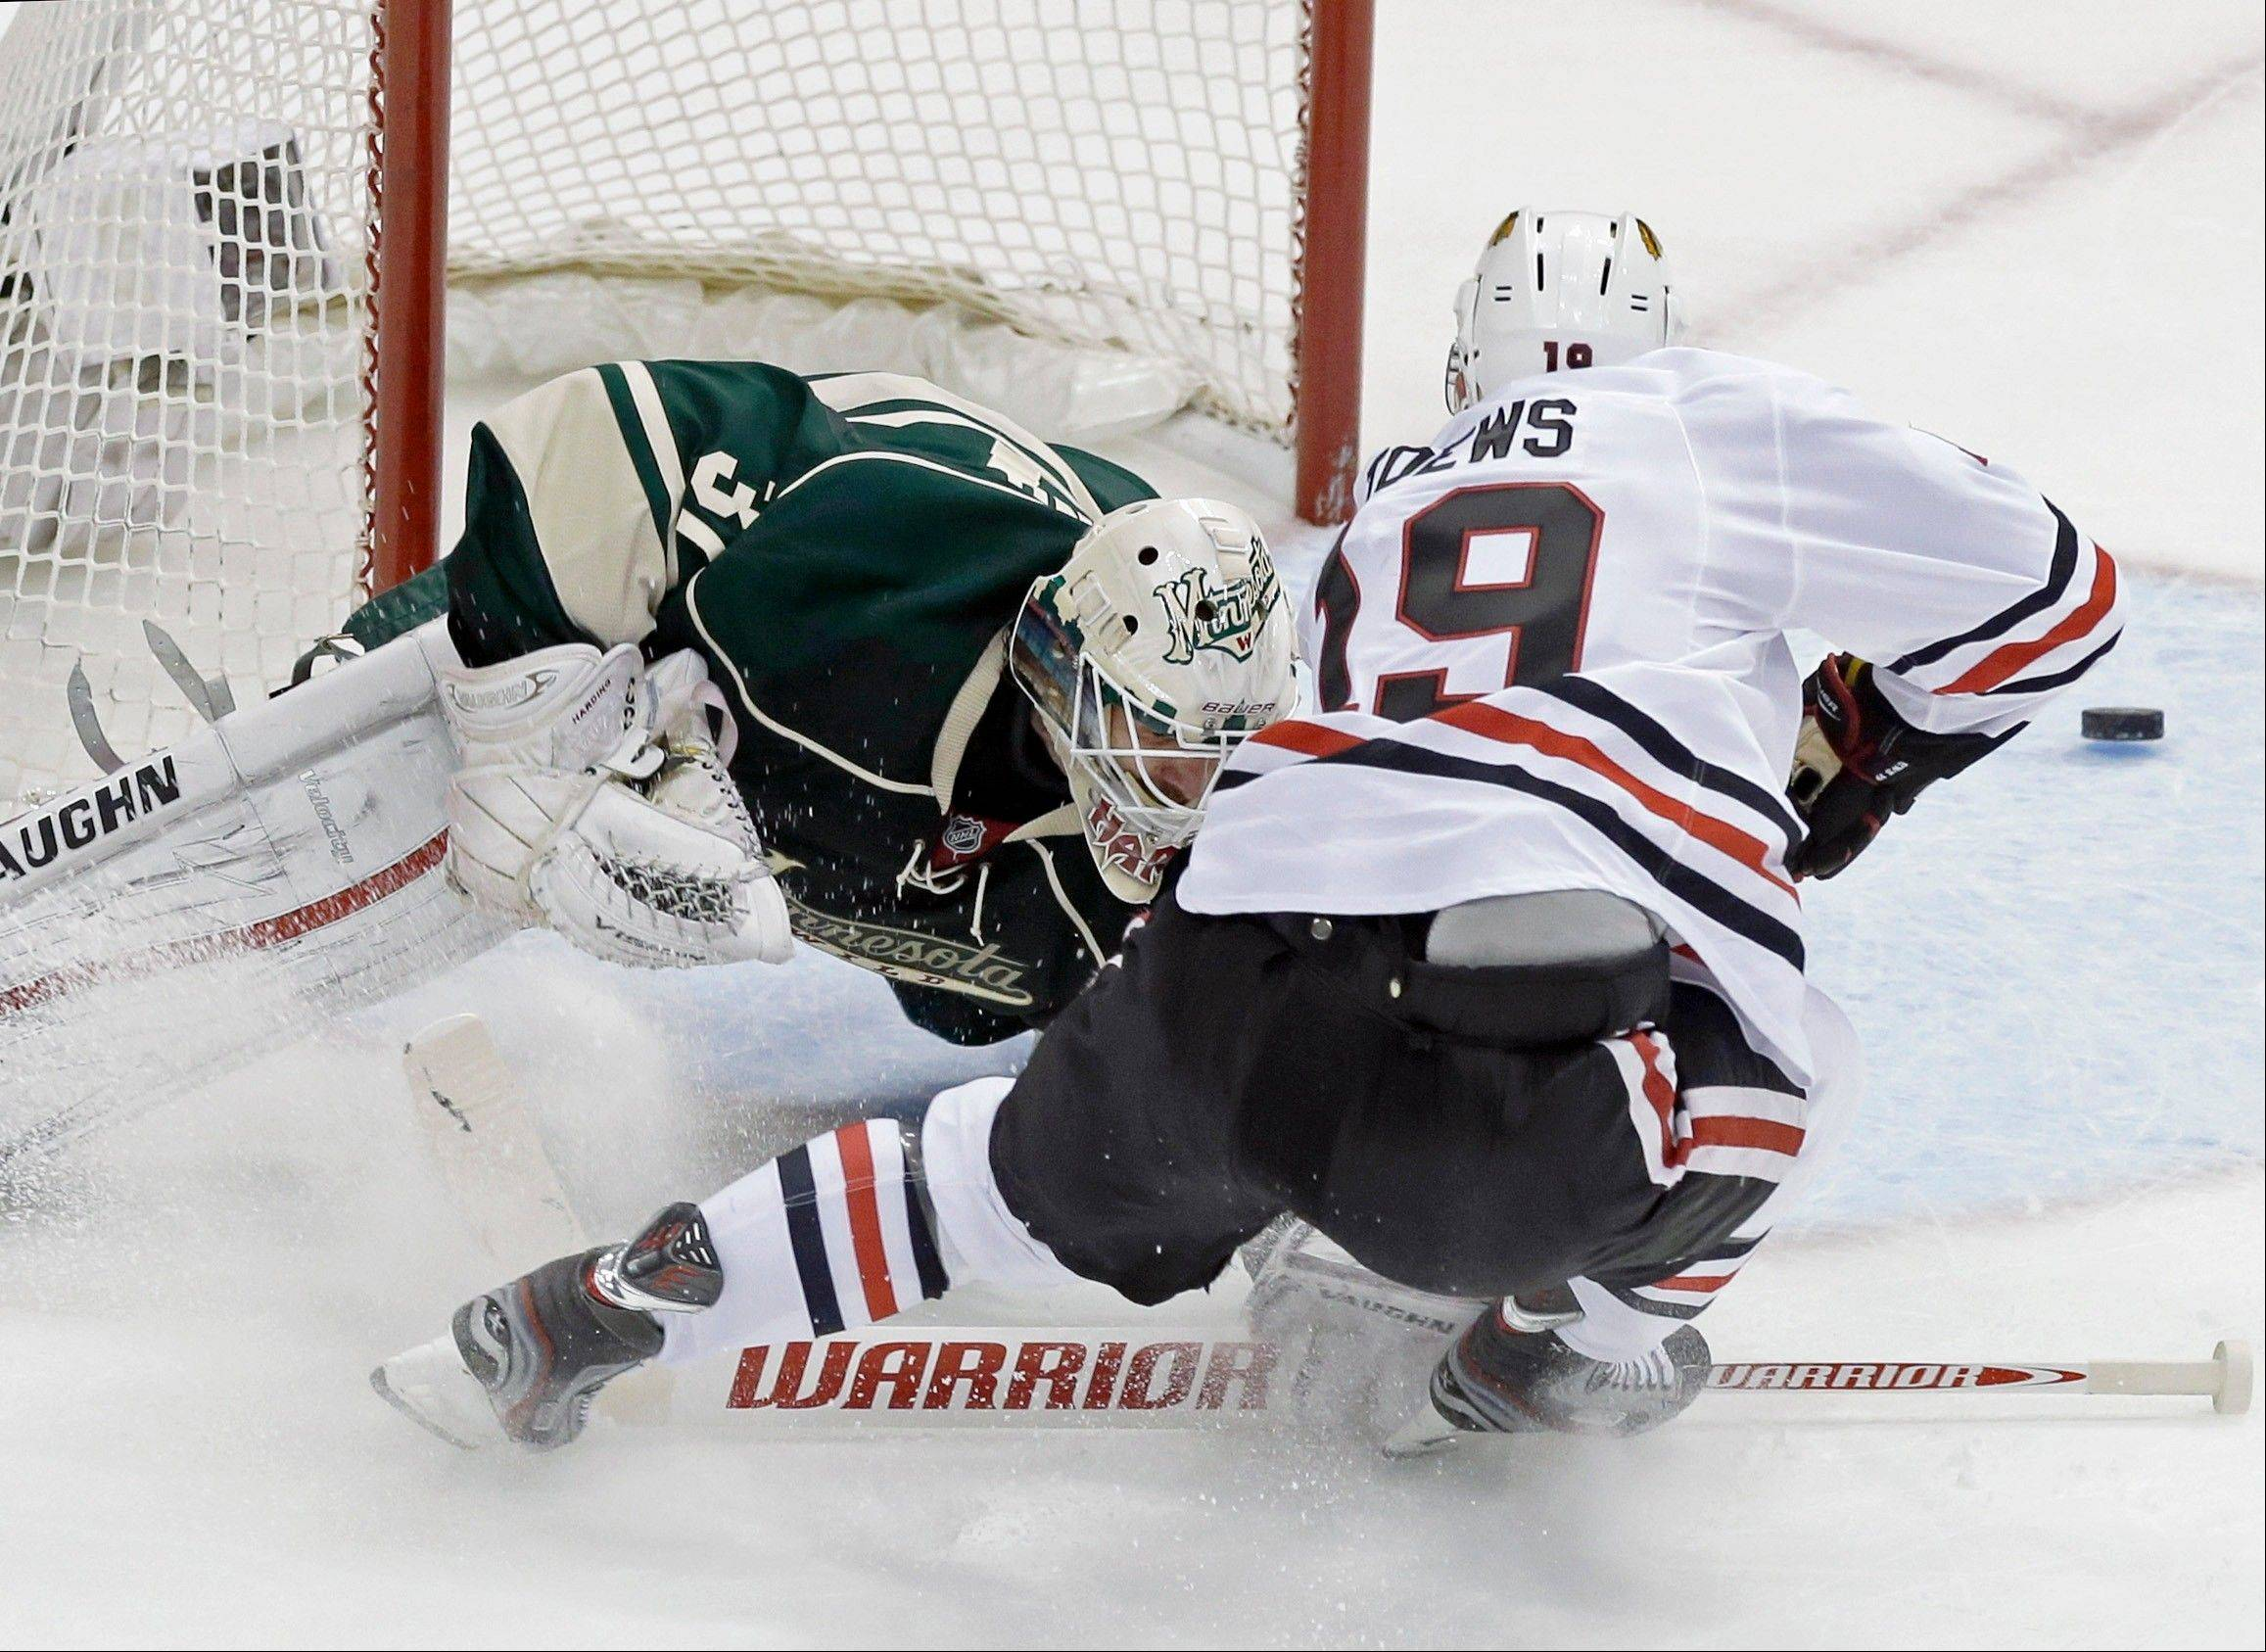 Minnesota Wild goalie Josh Harding, left, stops a shot by Chicago Blackhawks' Jonathan Toews in the first period of Game 4 of an NHL hockey Stanley Cup playoff series, Tuesday, May 7, 2013 in St. Paul, Minn. Harding was injured on the play and left the game after the first period.